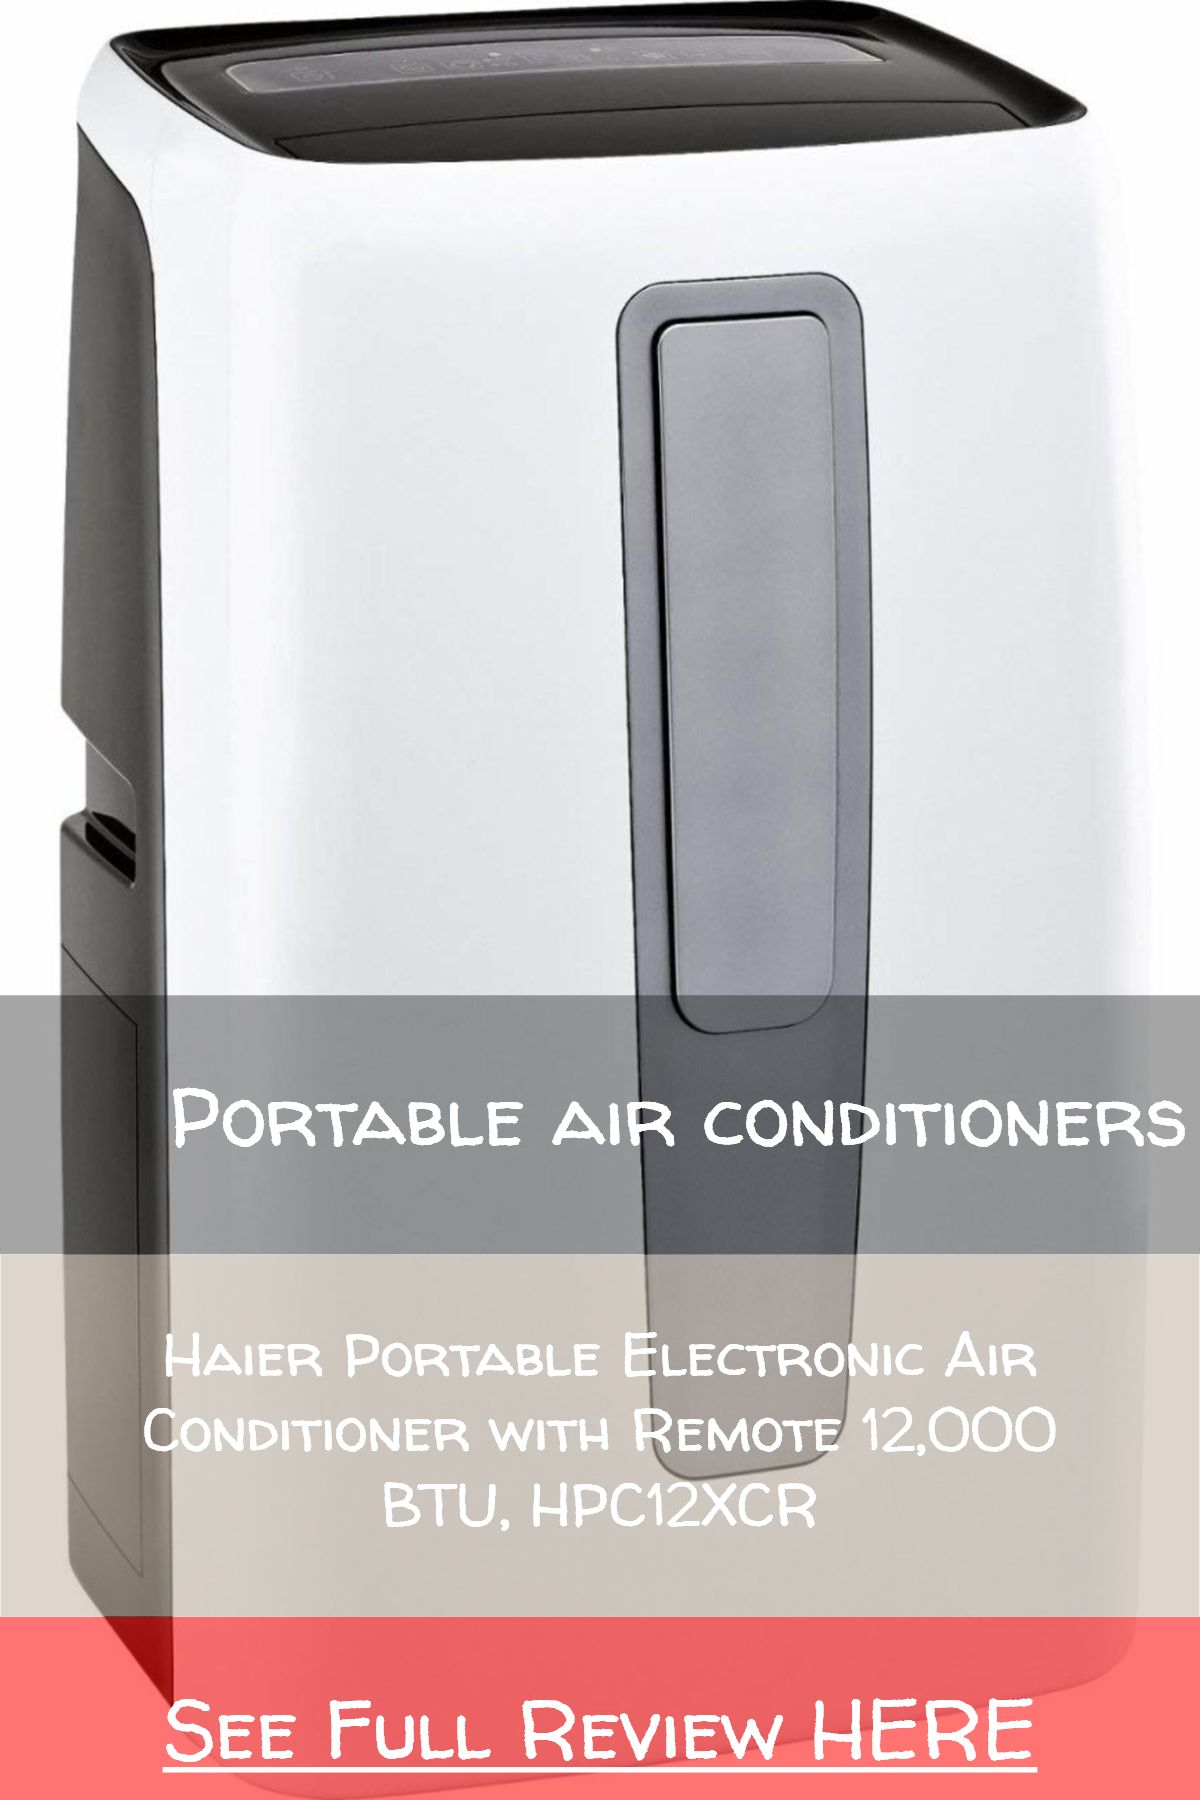 Portable air conditioners / Haier Portable Electronic Air